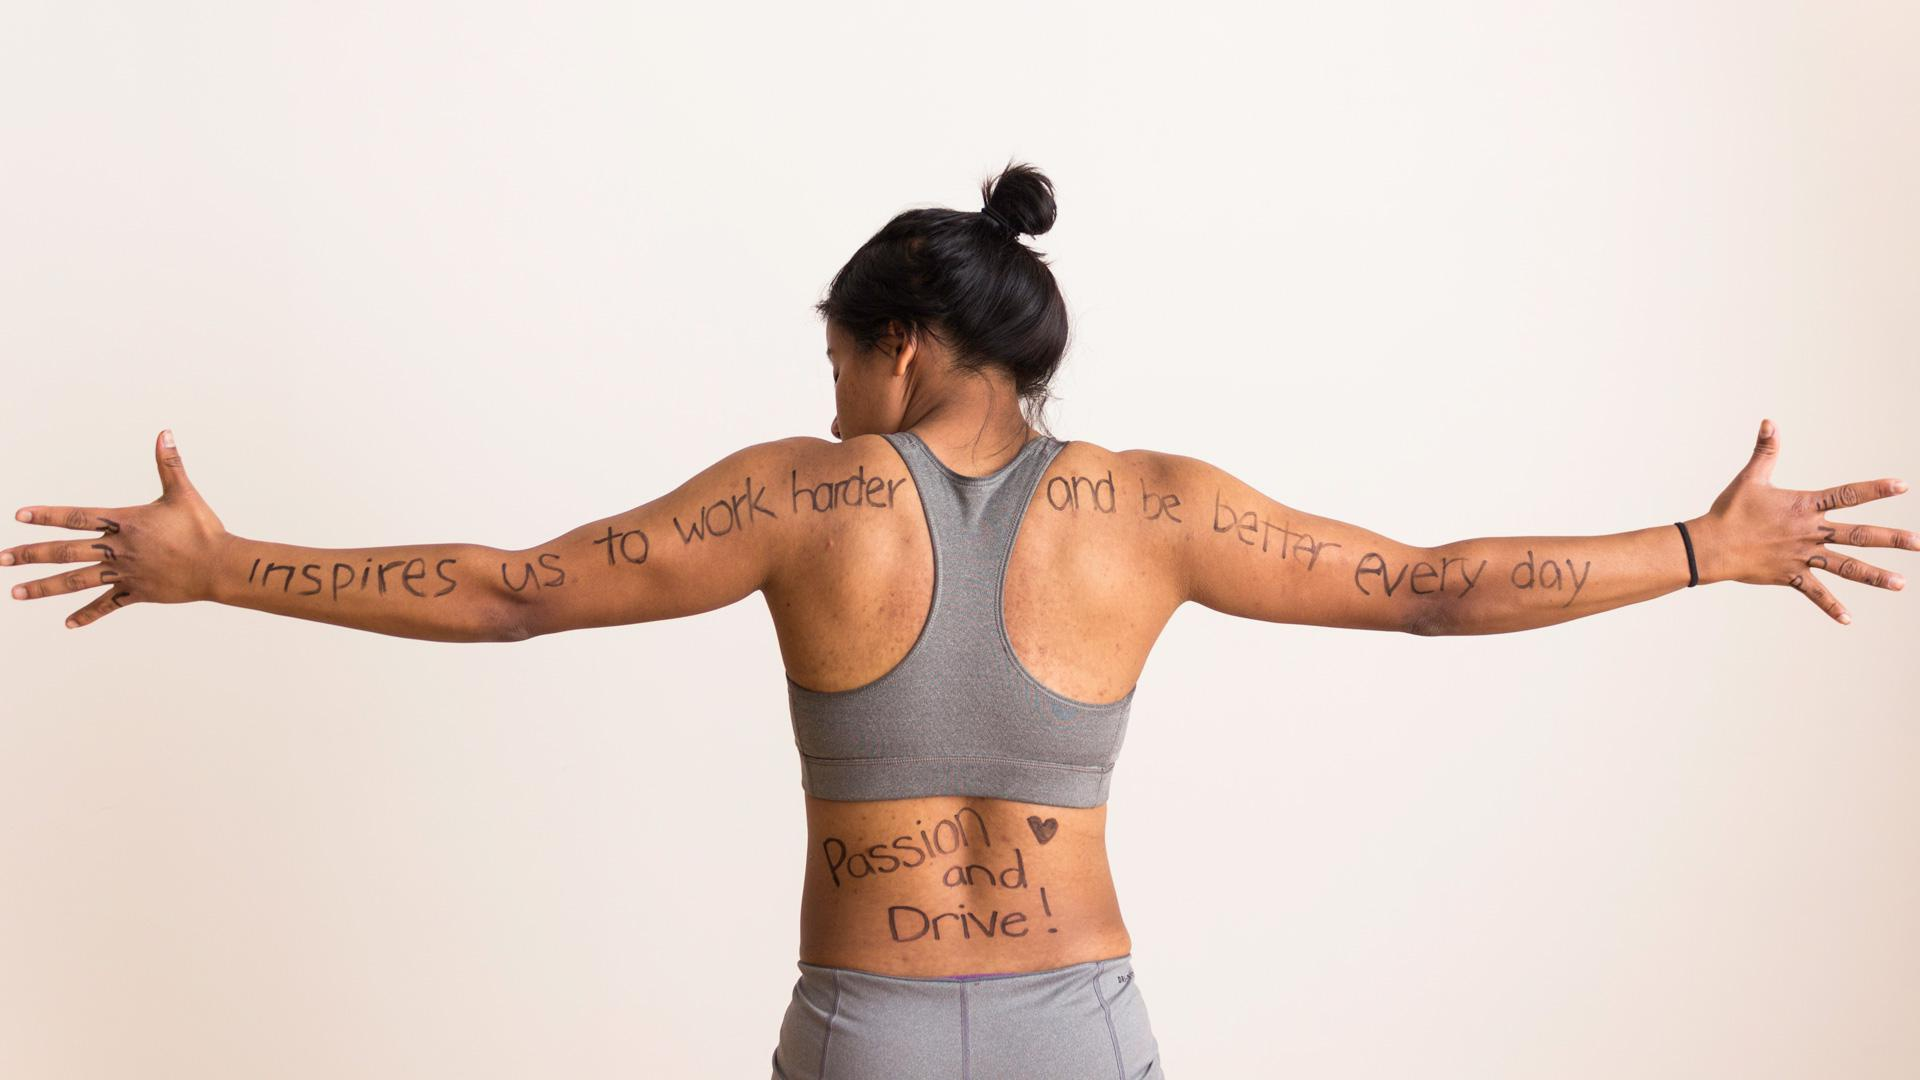 Harvard's women's rugby team tackles body hate with kick-ass photo project